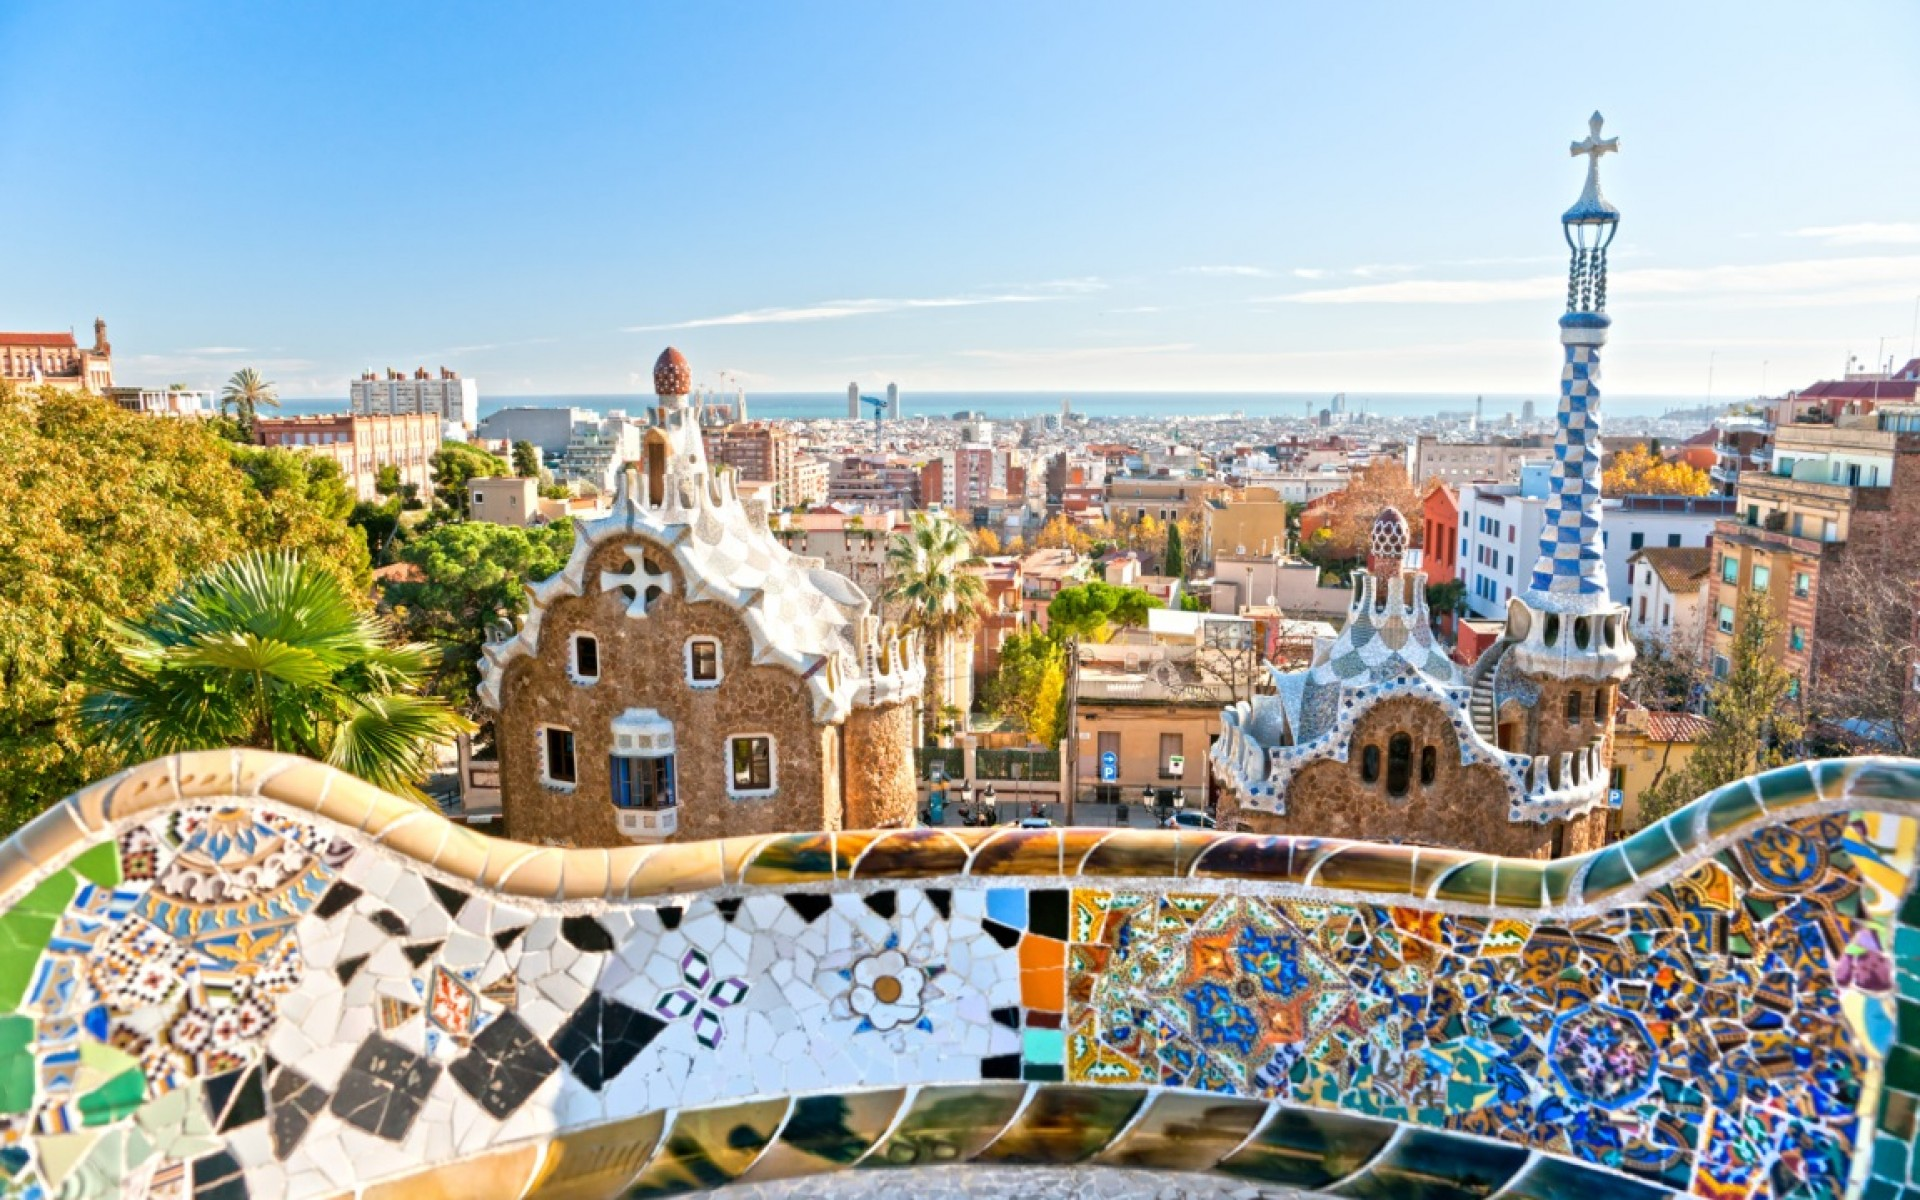 barcelonas-park-guell-secret-world